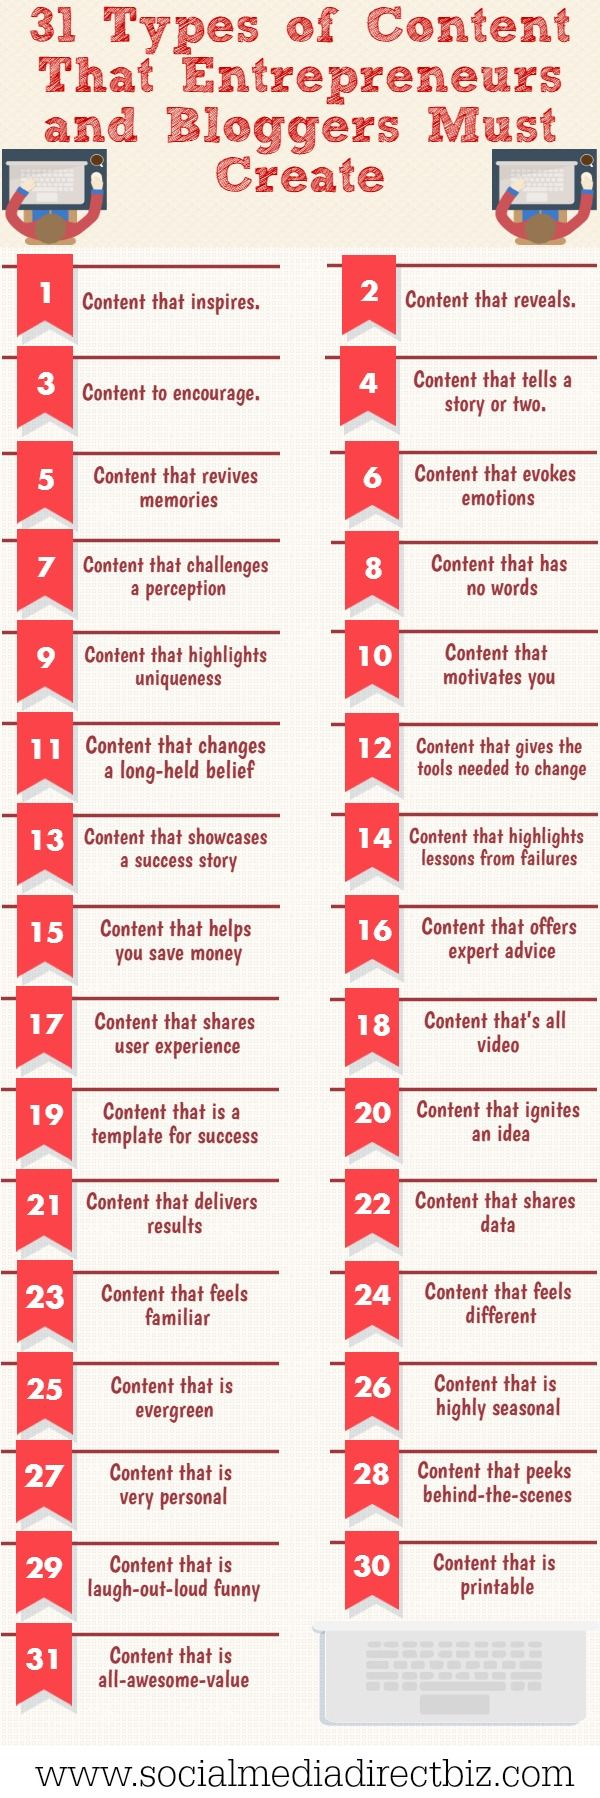 31 Types of Content That Your Readers Want to Read Desperately PLUS a Giveaway